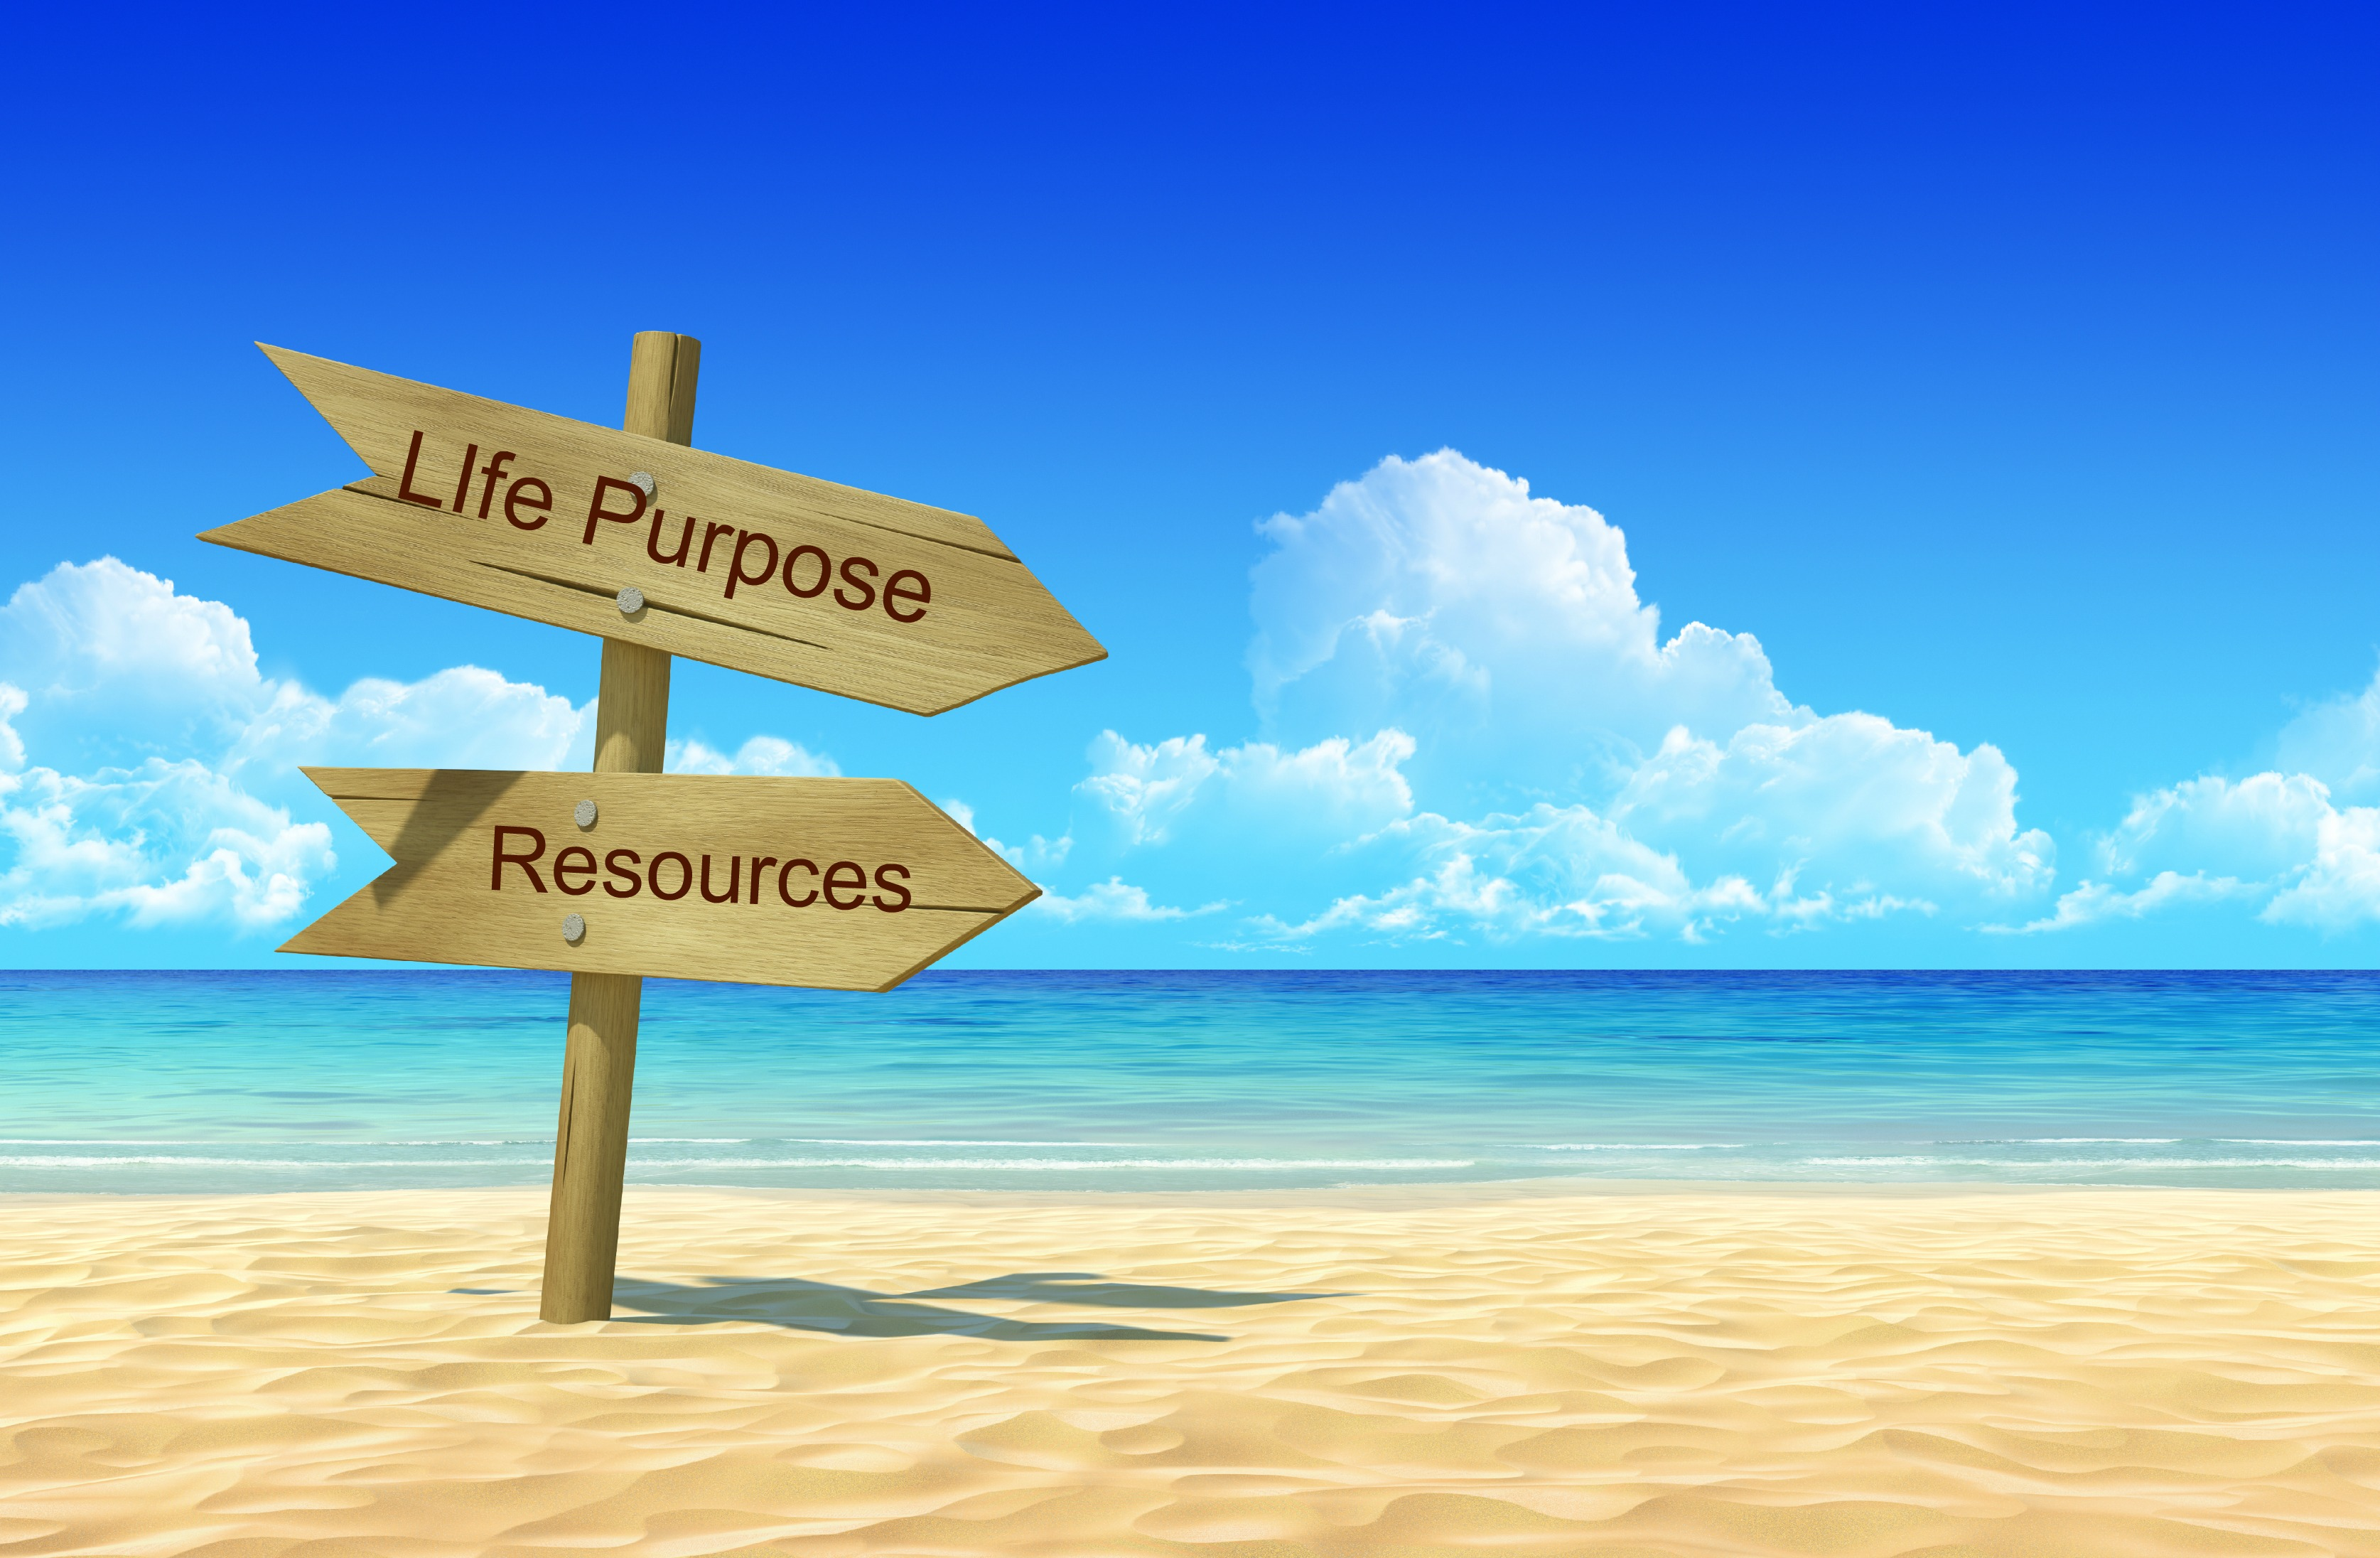 purpose in life Keep a purpose journal journaling is a useful tool for making any changes to your life or your perspective create a dedicated journal that will help you write down and explore your thoughts about your life's purpose, your passions, and your joys.